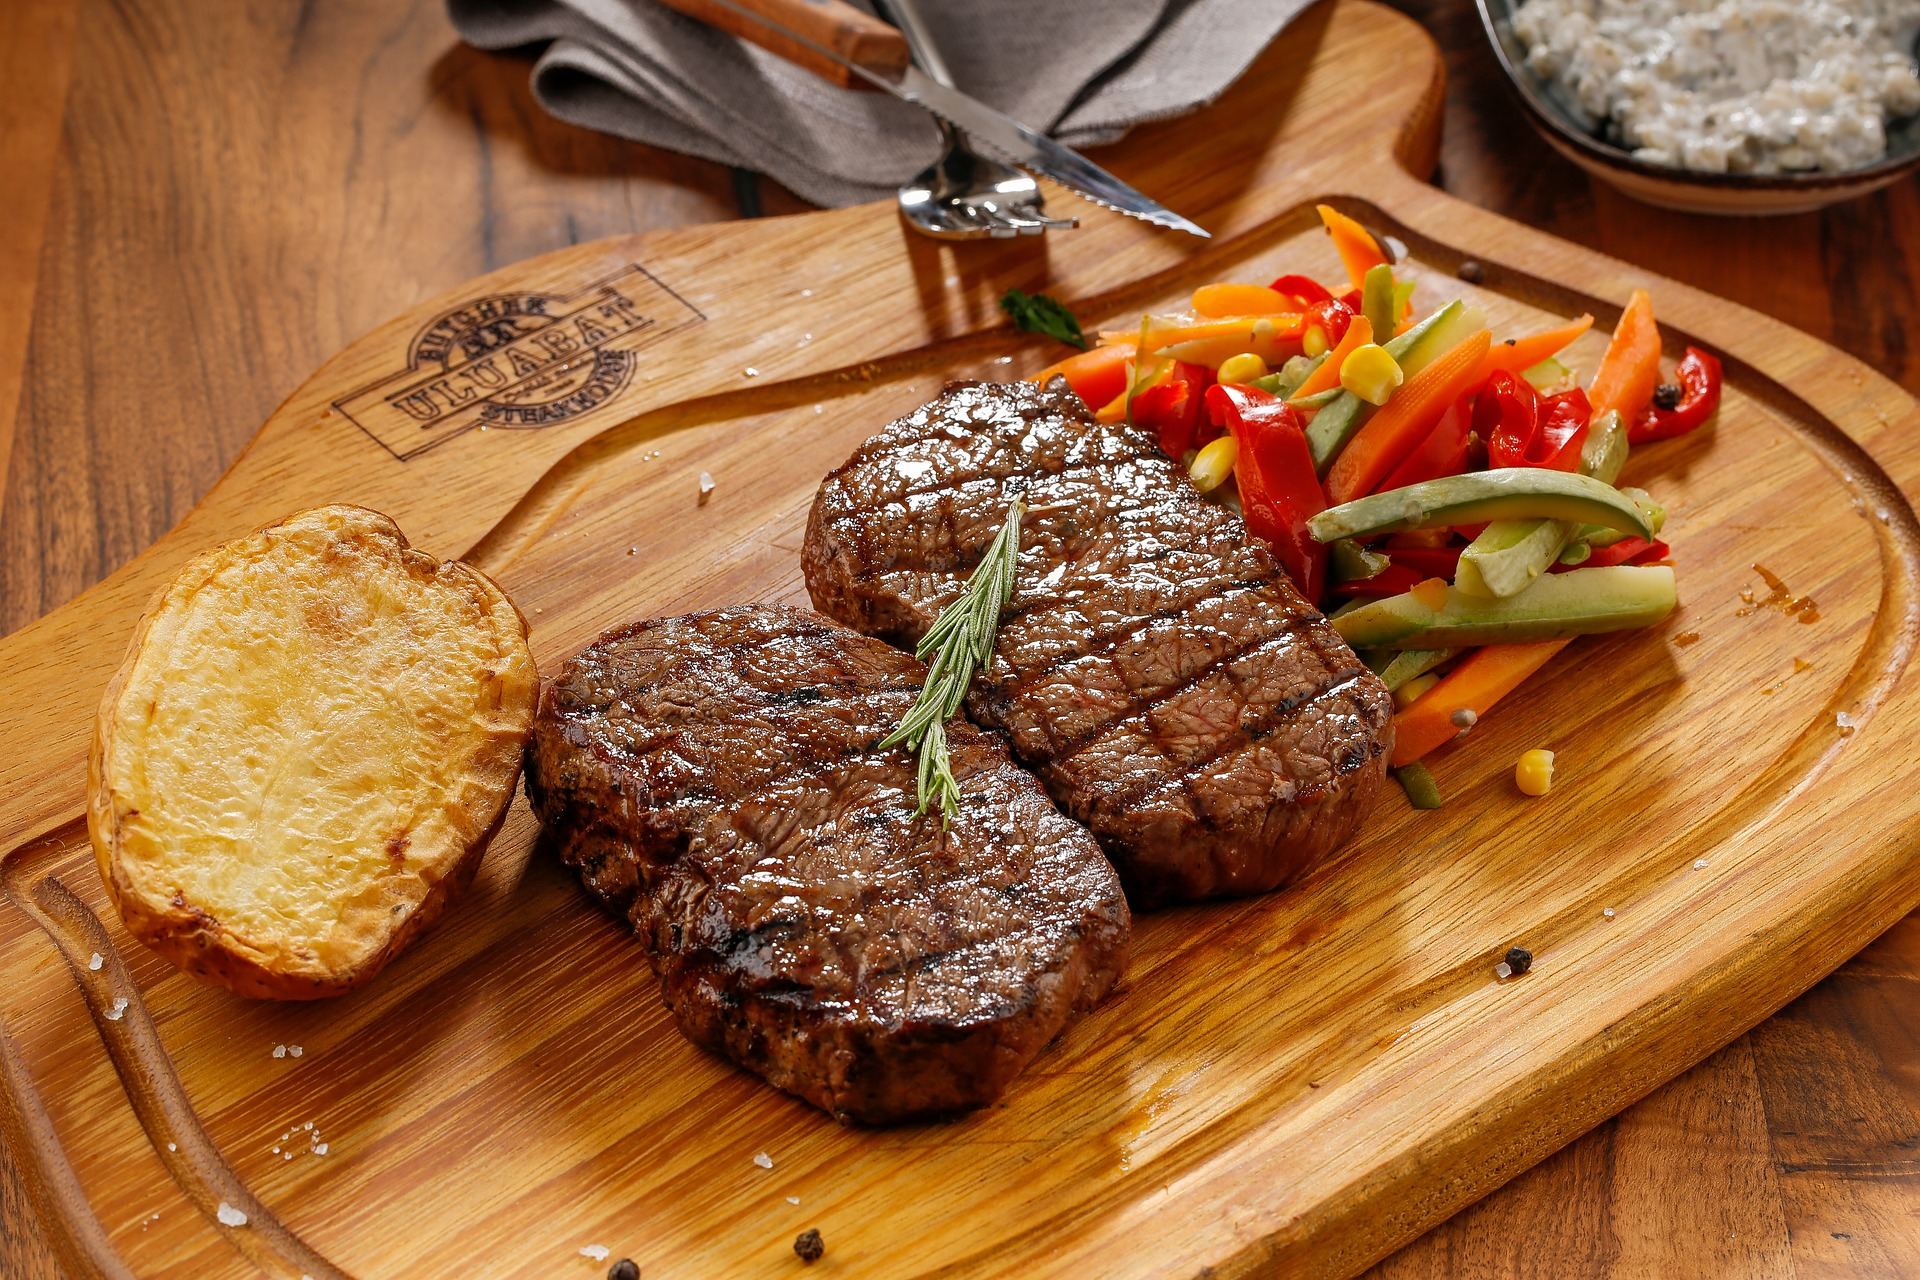 Food business ideas in South Africa